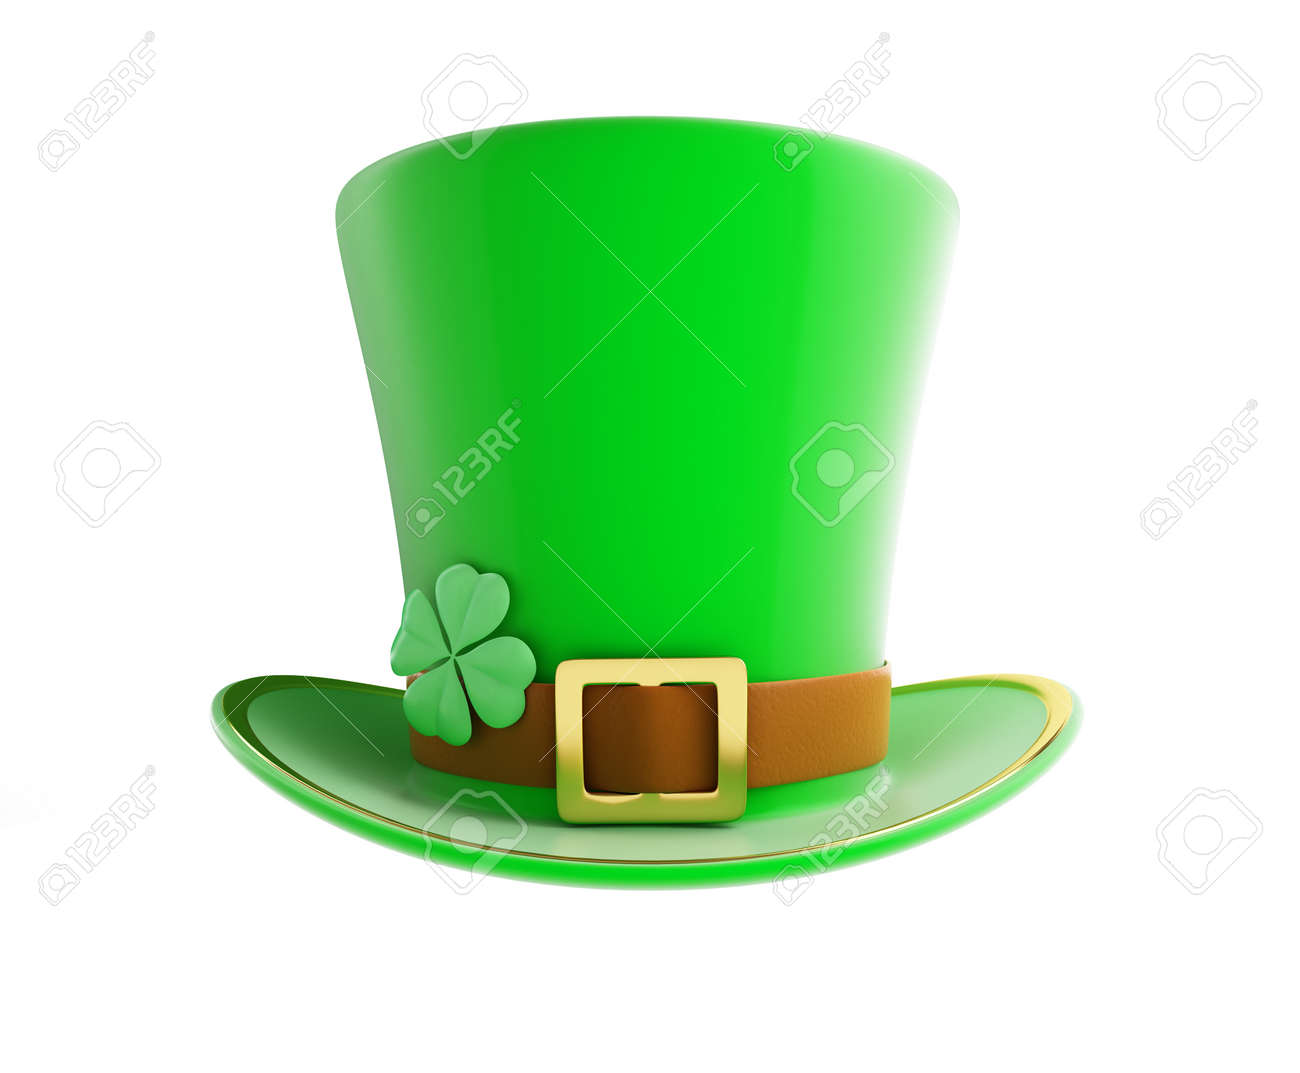 St. Patrick's day green hat on a white background Stock Photo - 26446553